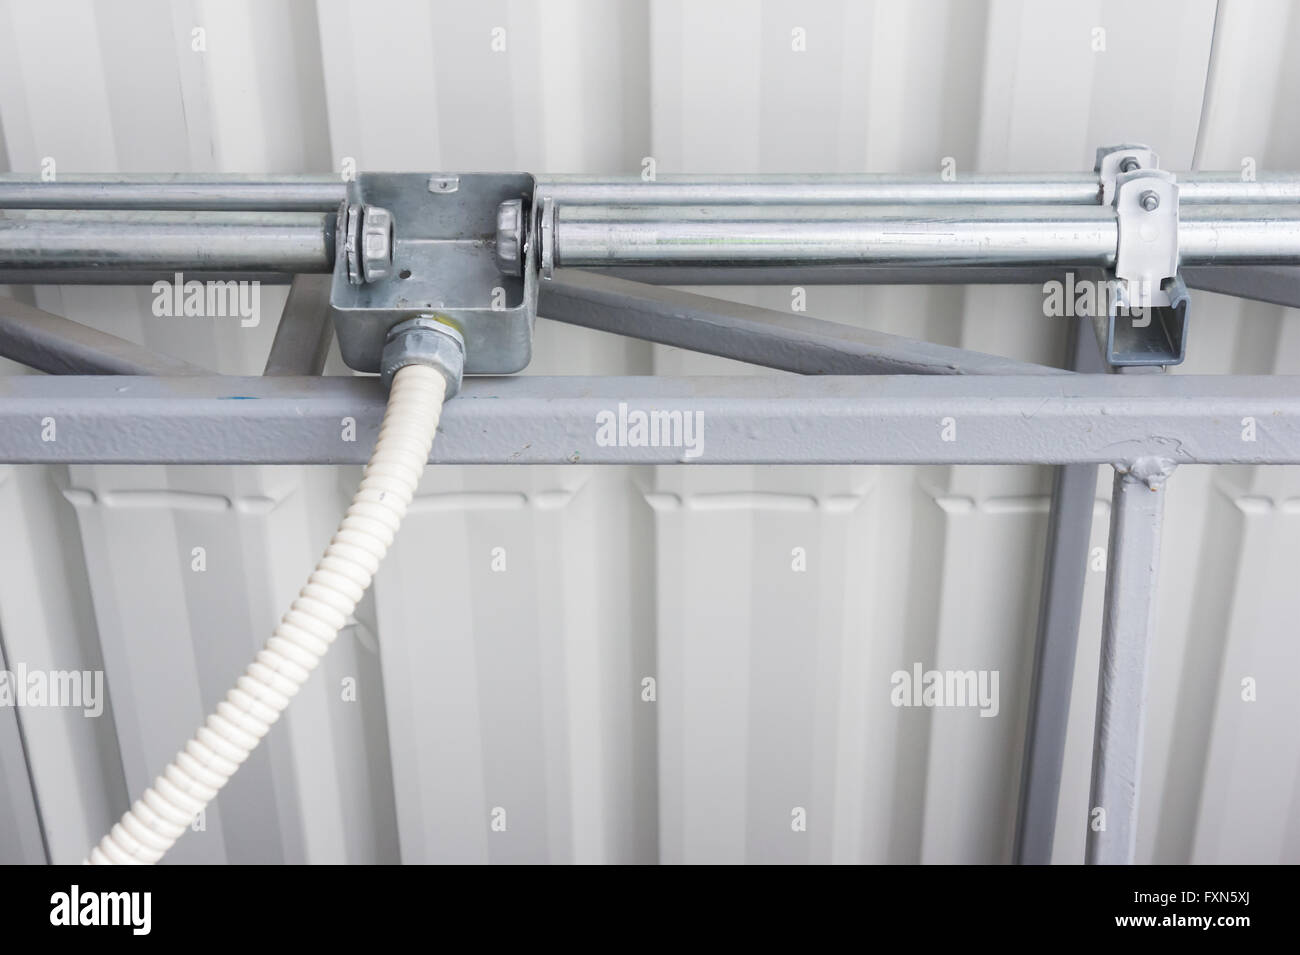 Fuse Box Conduit Wiring Diagram Libraries Flexible Libraryelectrical Junction With Pipe Connection Stock Image